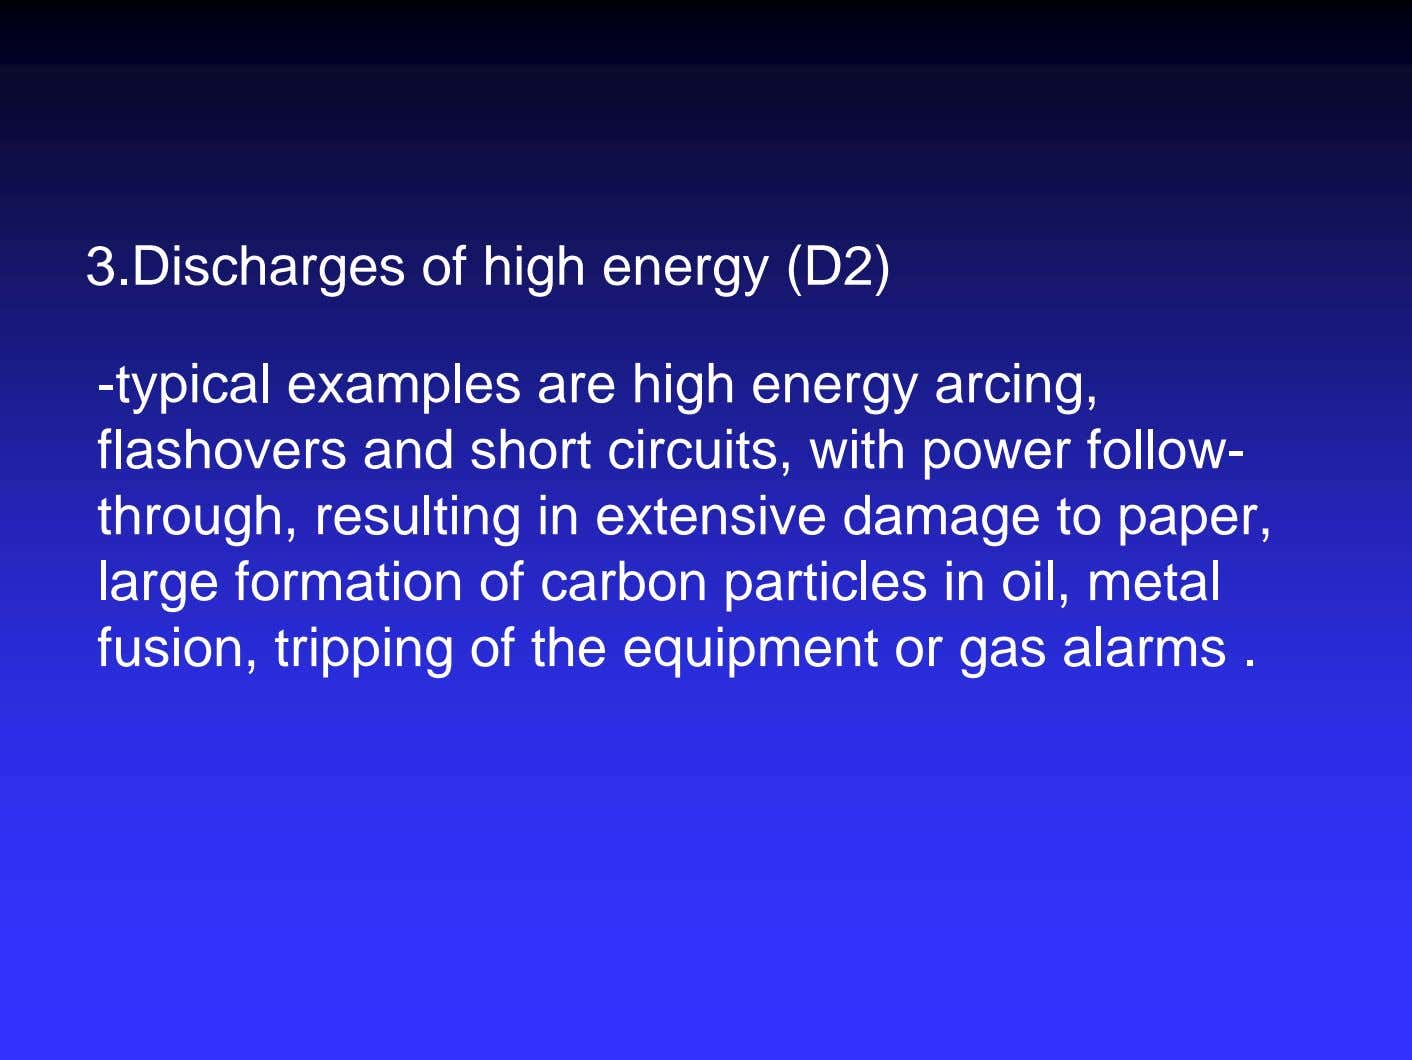 3.Discharges of high energy (D2) -typical examples are high energy arcing, flashovers and short circuits,